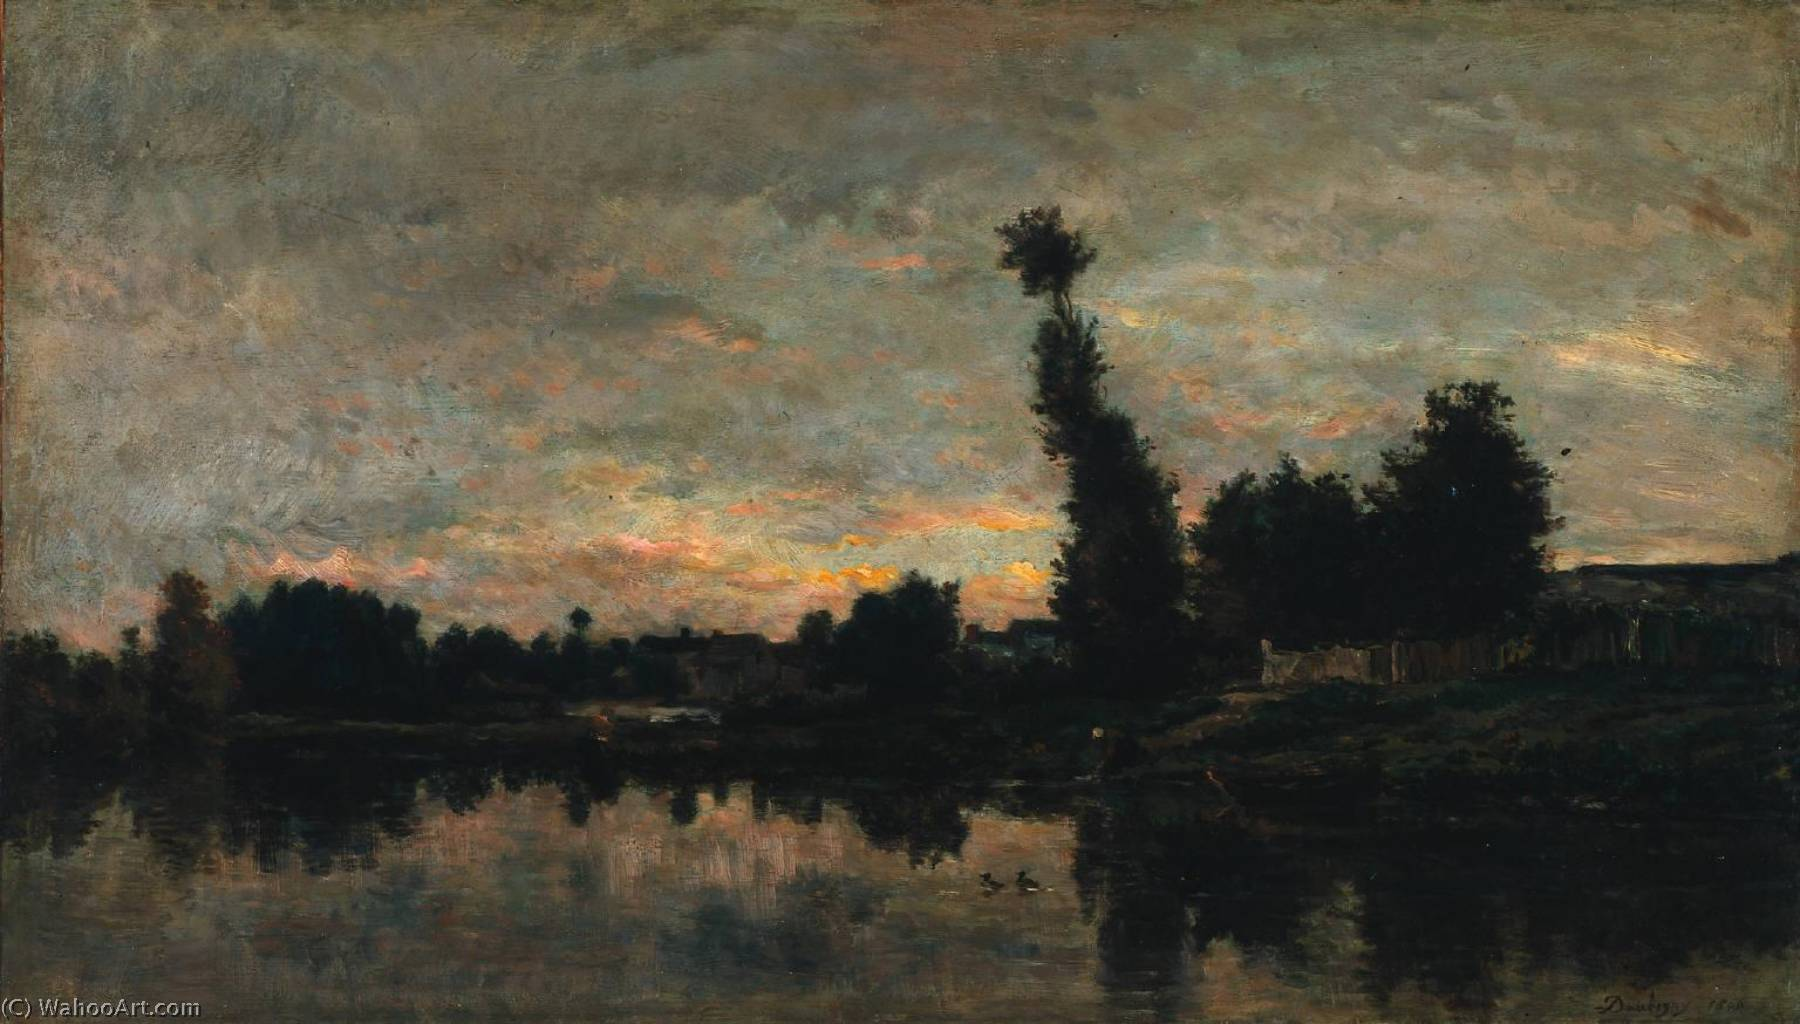 Sunset on the River Oise, 1866 by Charles François Daubigny (1817-1878, France) | Oil Painting | WahooArt.com